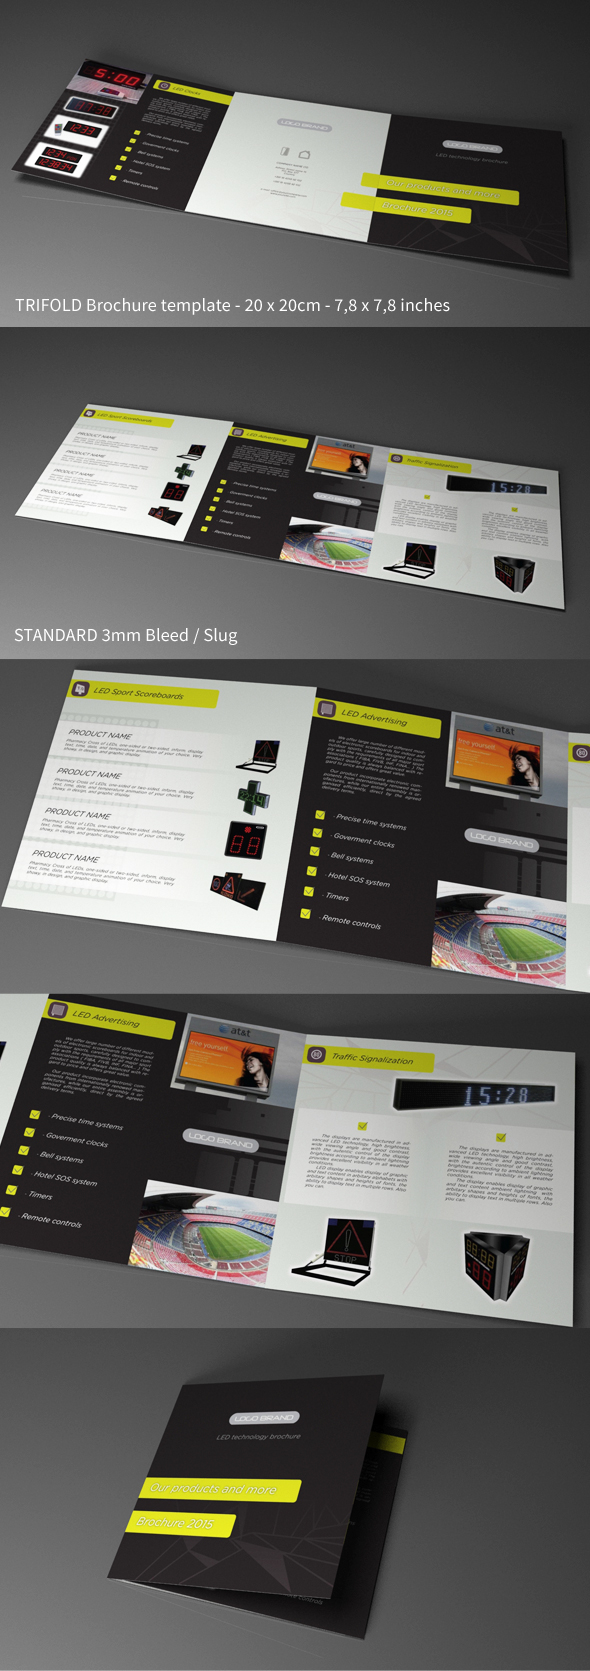 Free indesign template trifold square led tech on behance for Tri fold brochure template indesign cs6